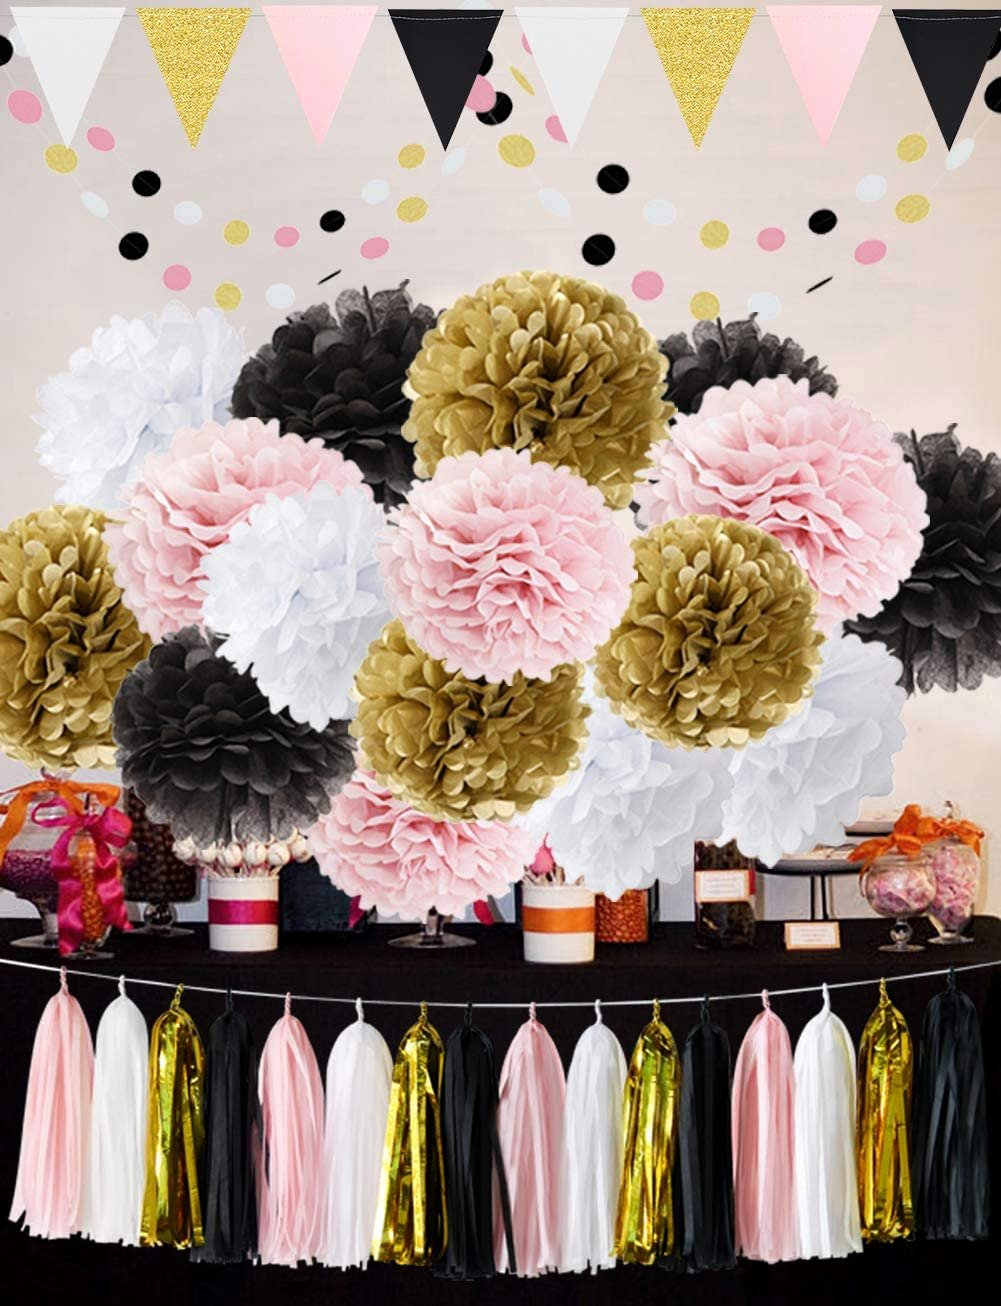 Birthday Decoration Ideas Black and Gold Lovely French Paris theme Birthday Decorations Party Decoration 35pcs Black Pink White Gold Tissue Paper Pom Pom Paper Tassel Garland Circle Garland Triangle